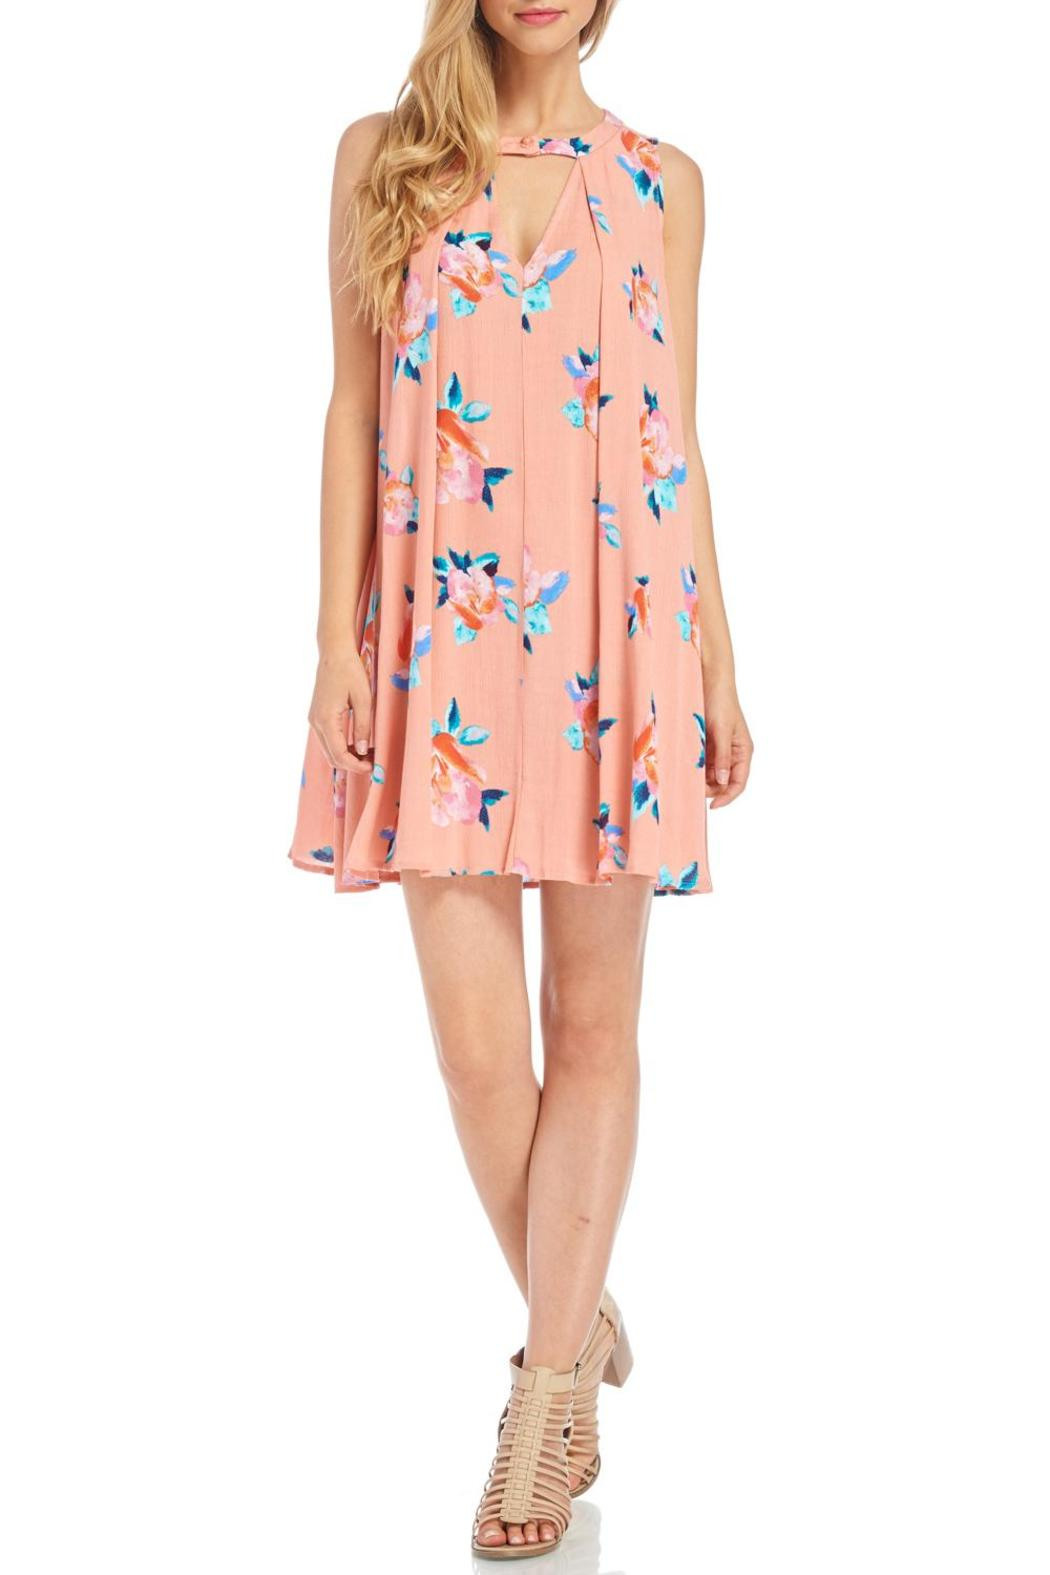 4b4d4e27a2684c Peppermint Peach Floral Dress from Wisconsin by Apricot Lane ...